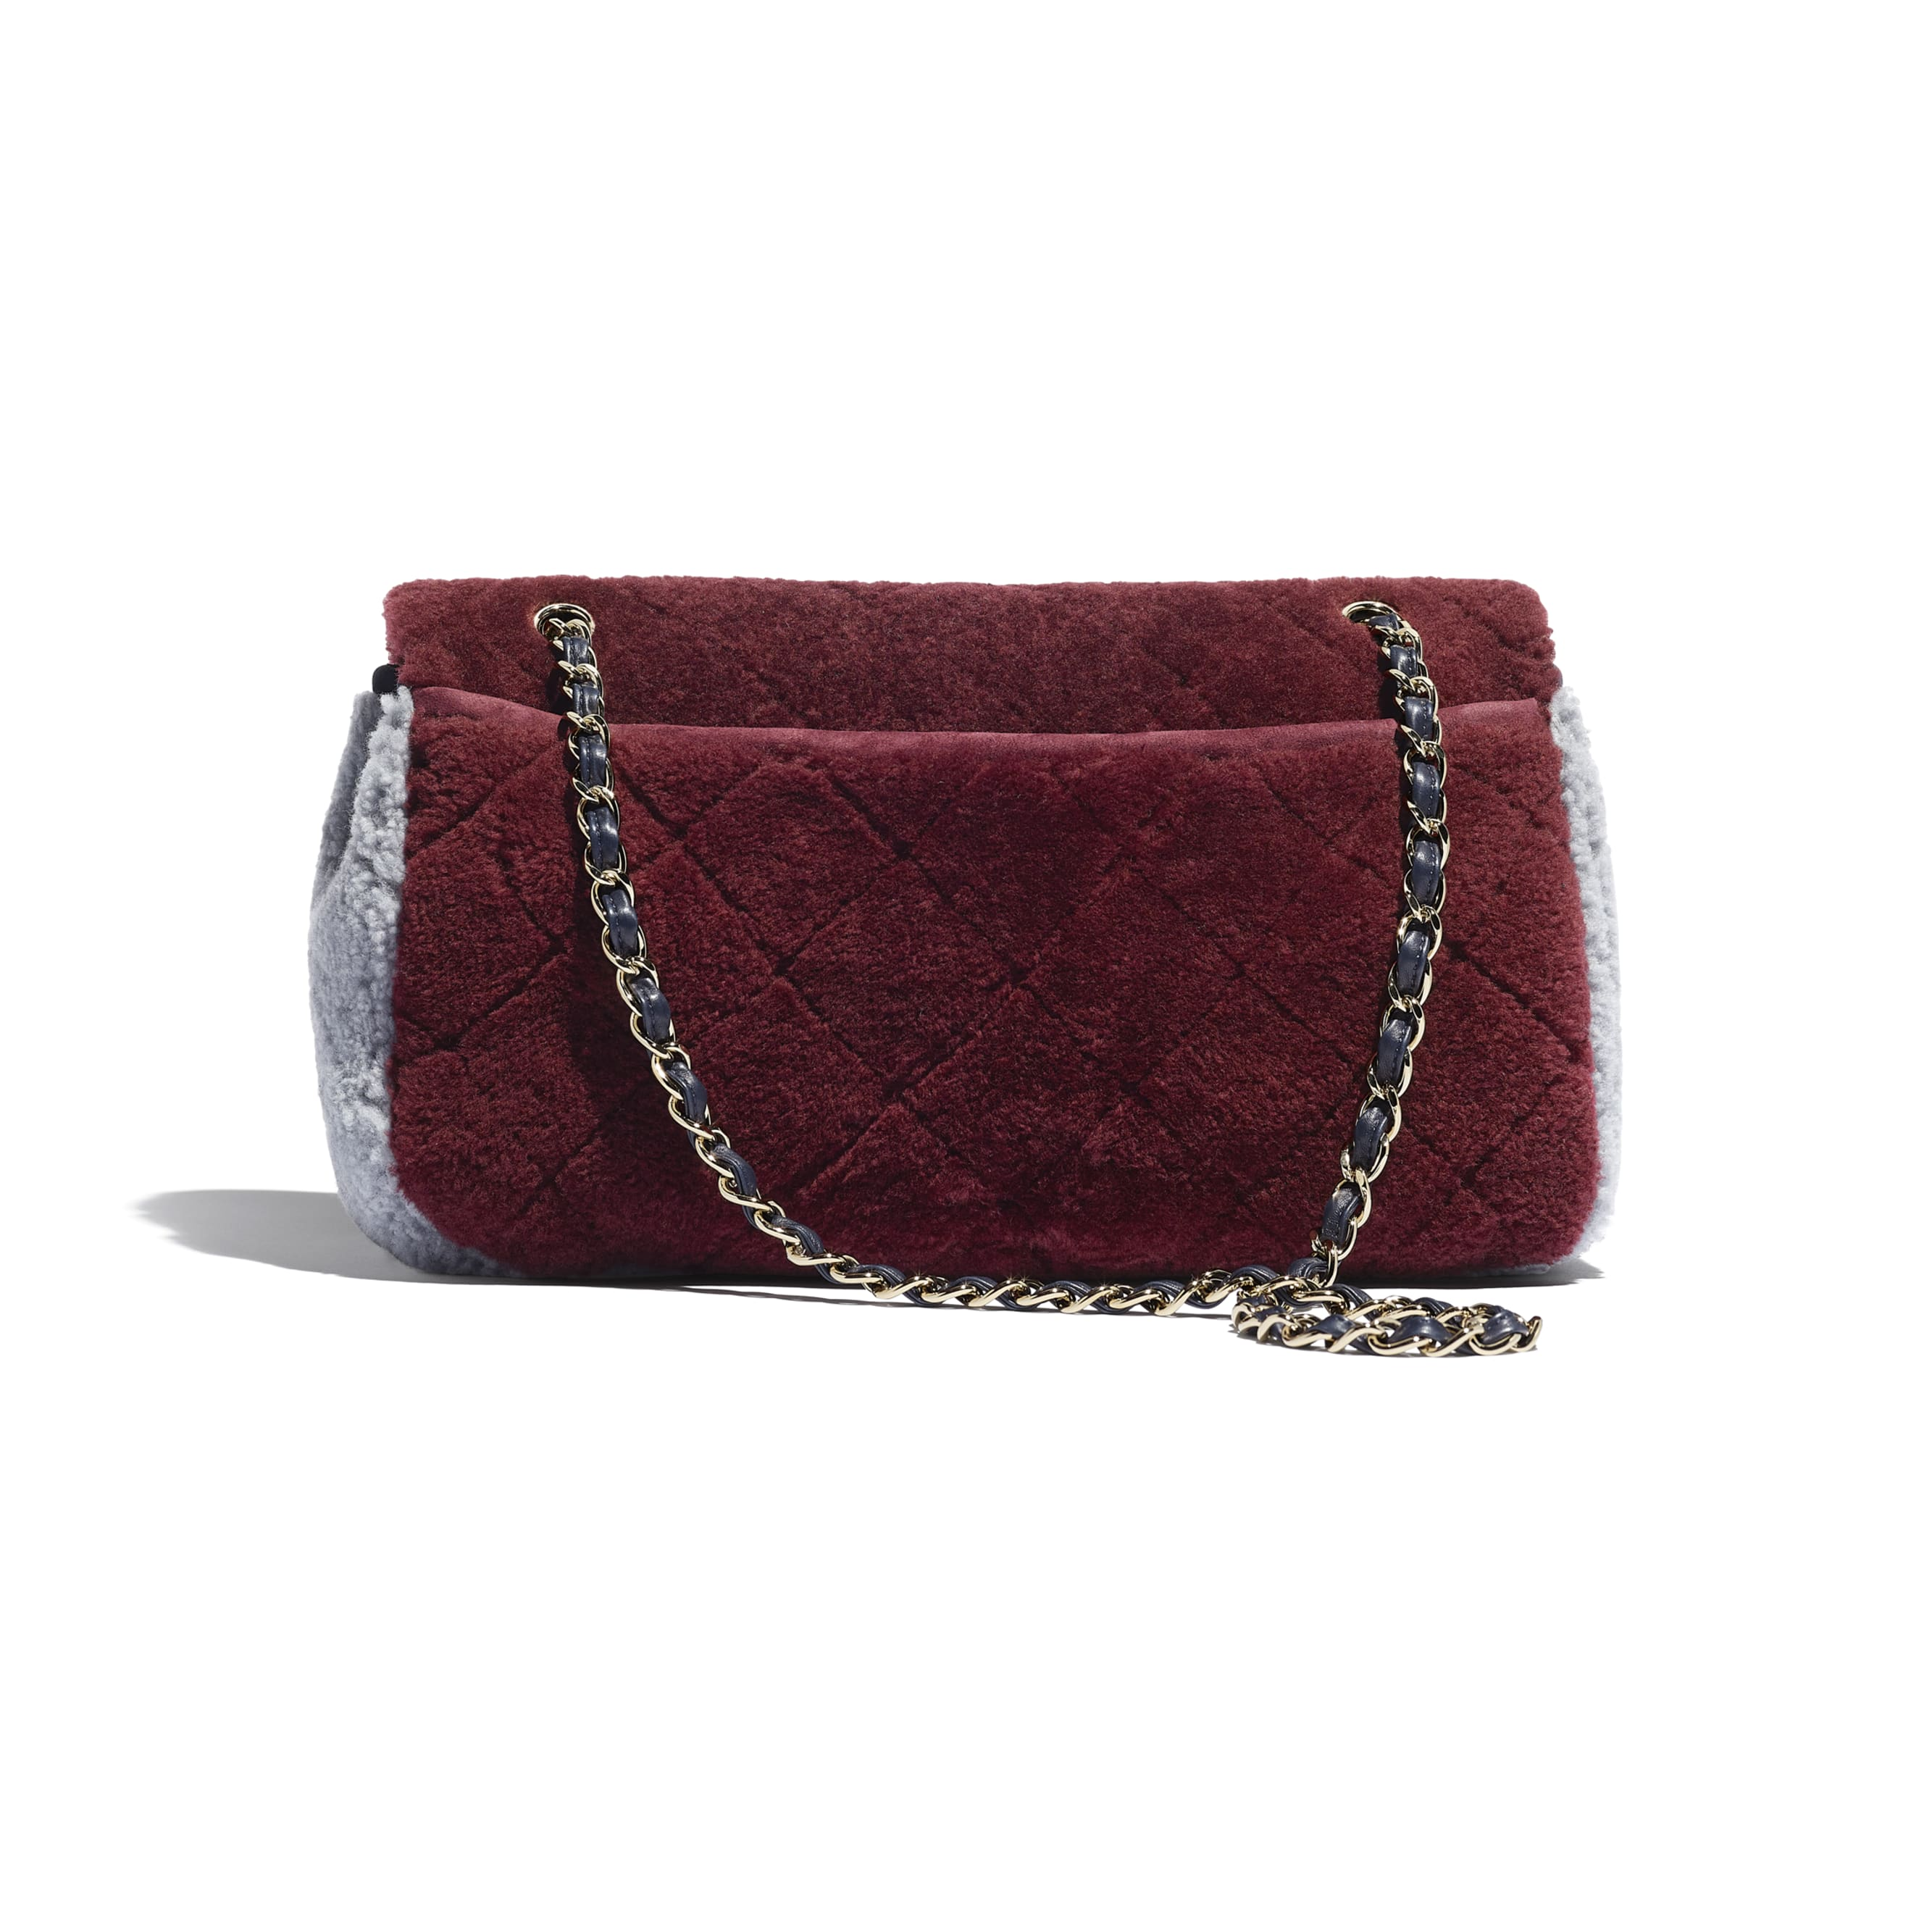 Flap Bag - Burgundy, Navy Blue & Gray - Shearling Sheepskin & Gold-Tone Metal - Alternative view - see standard sized version